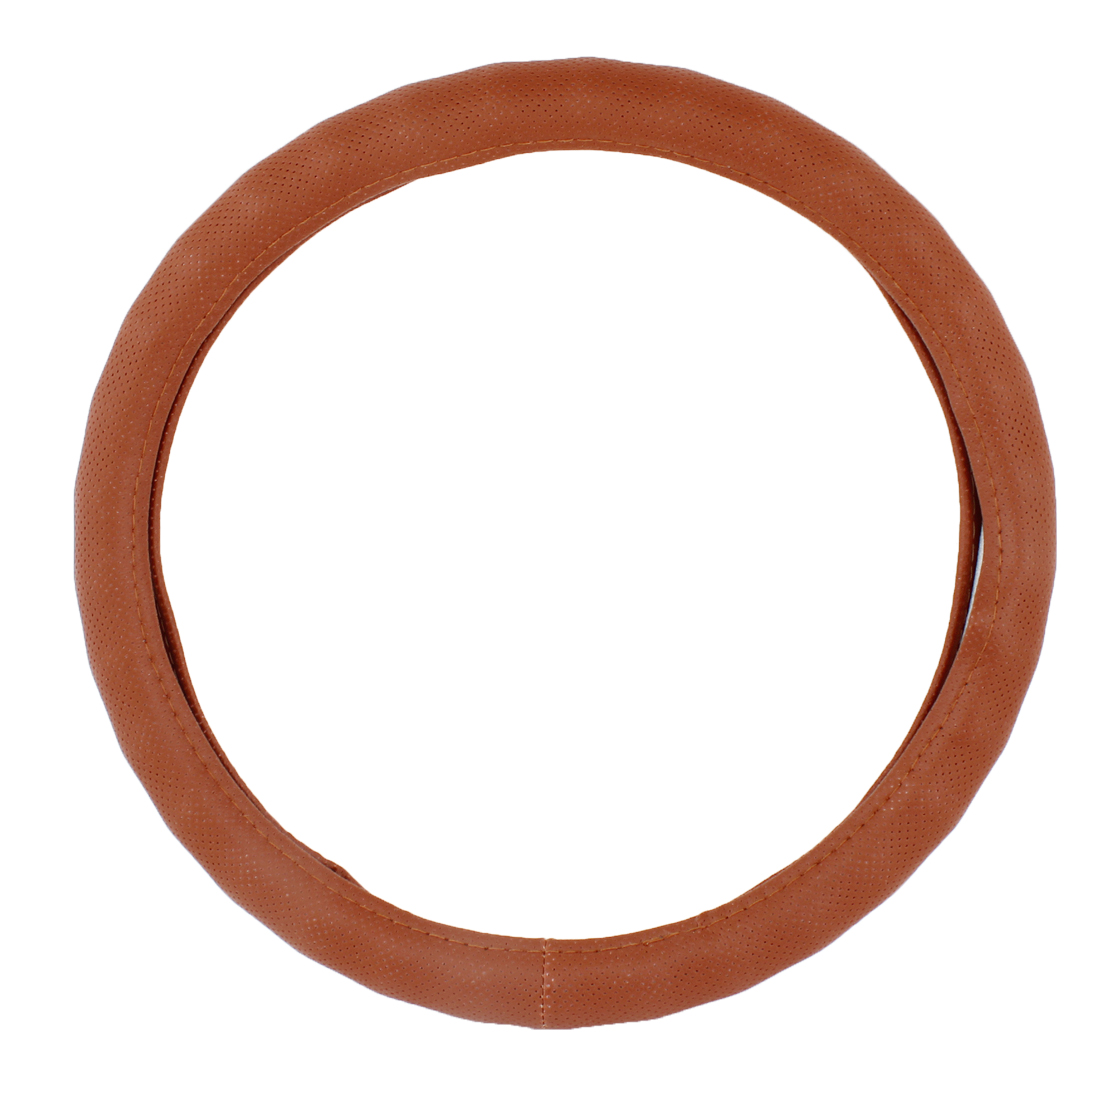 "15"" Dia Brown Mesh Design Faxu Leather Steering Wheel Holder Cover for Auto"